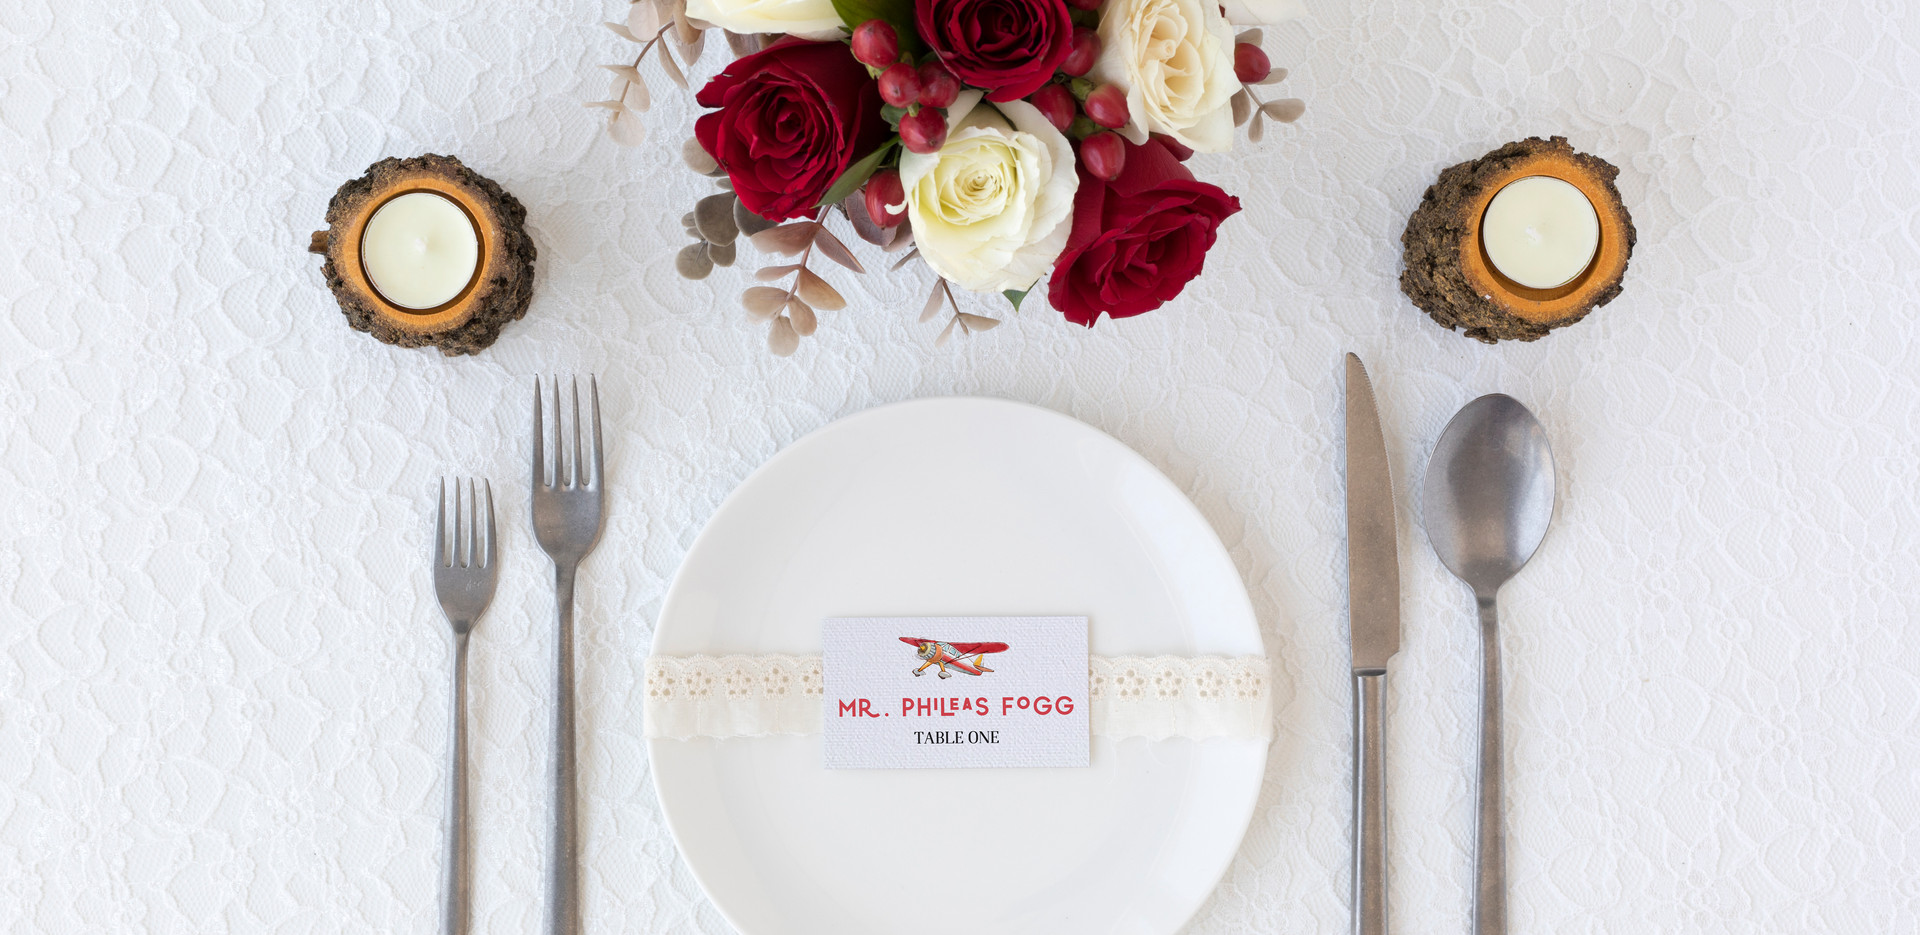 Place Card 2